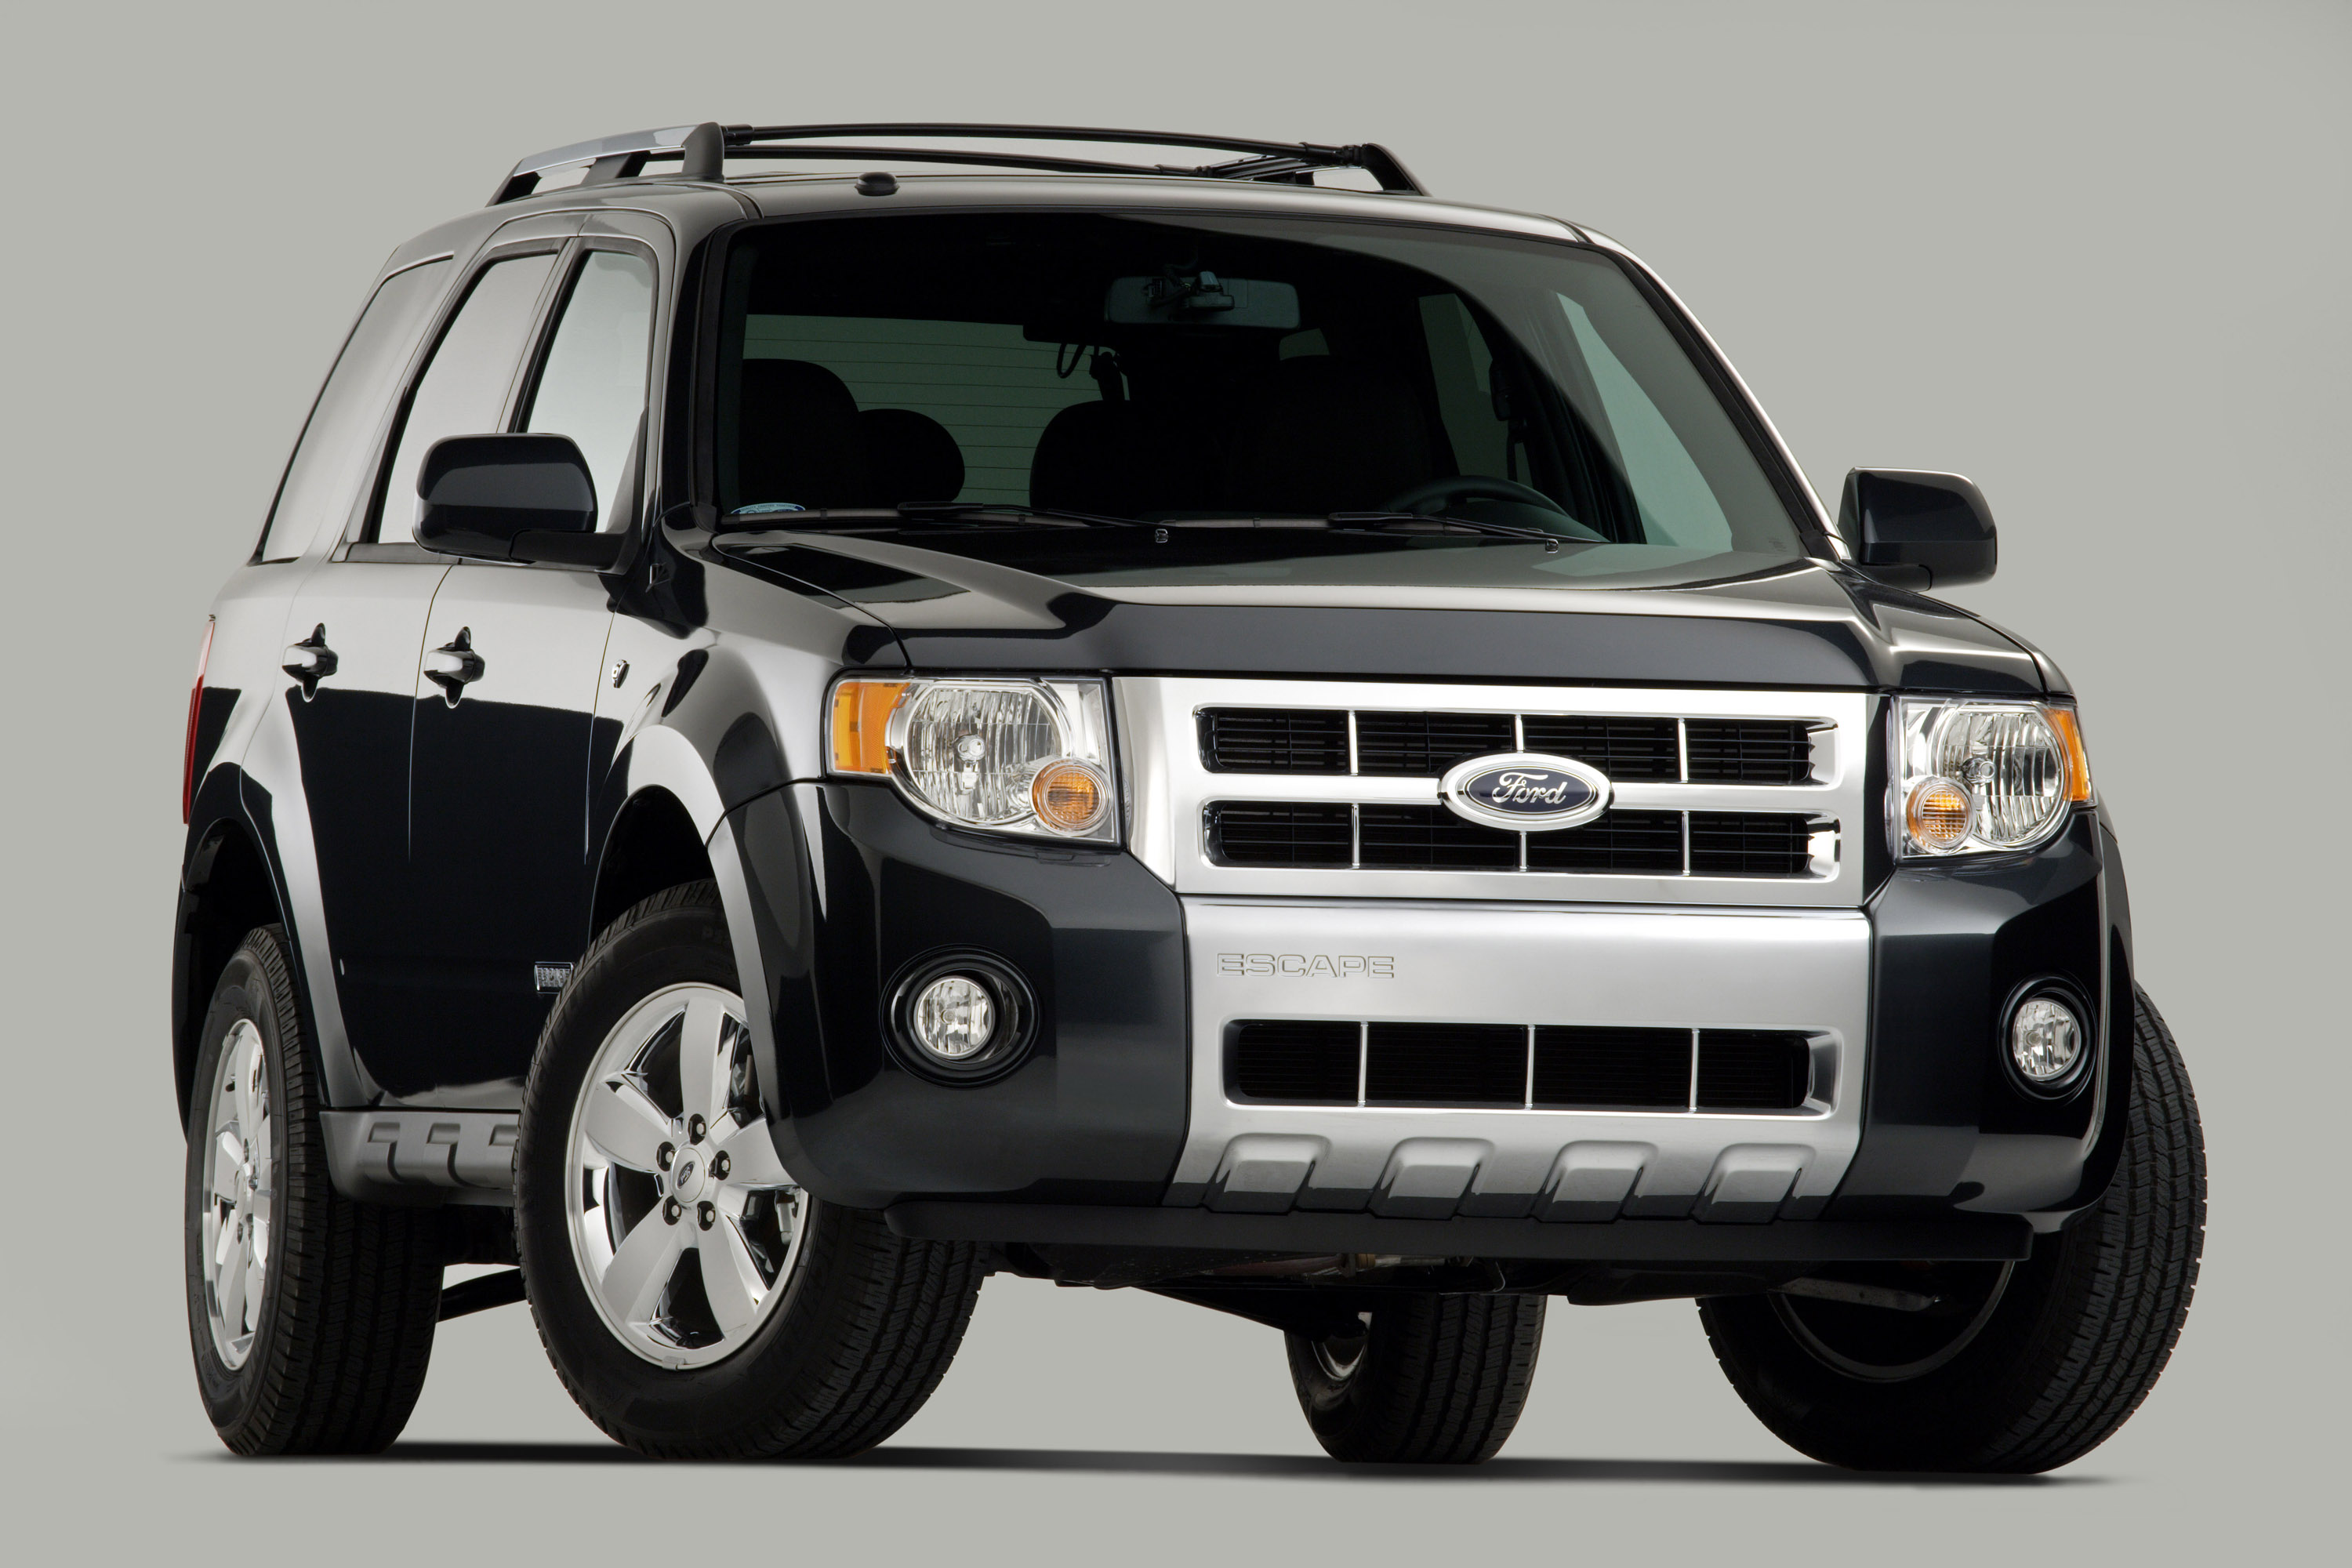 Best SUV Cars | SUV Today